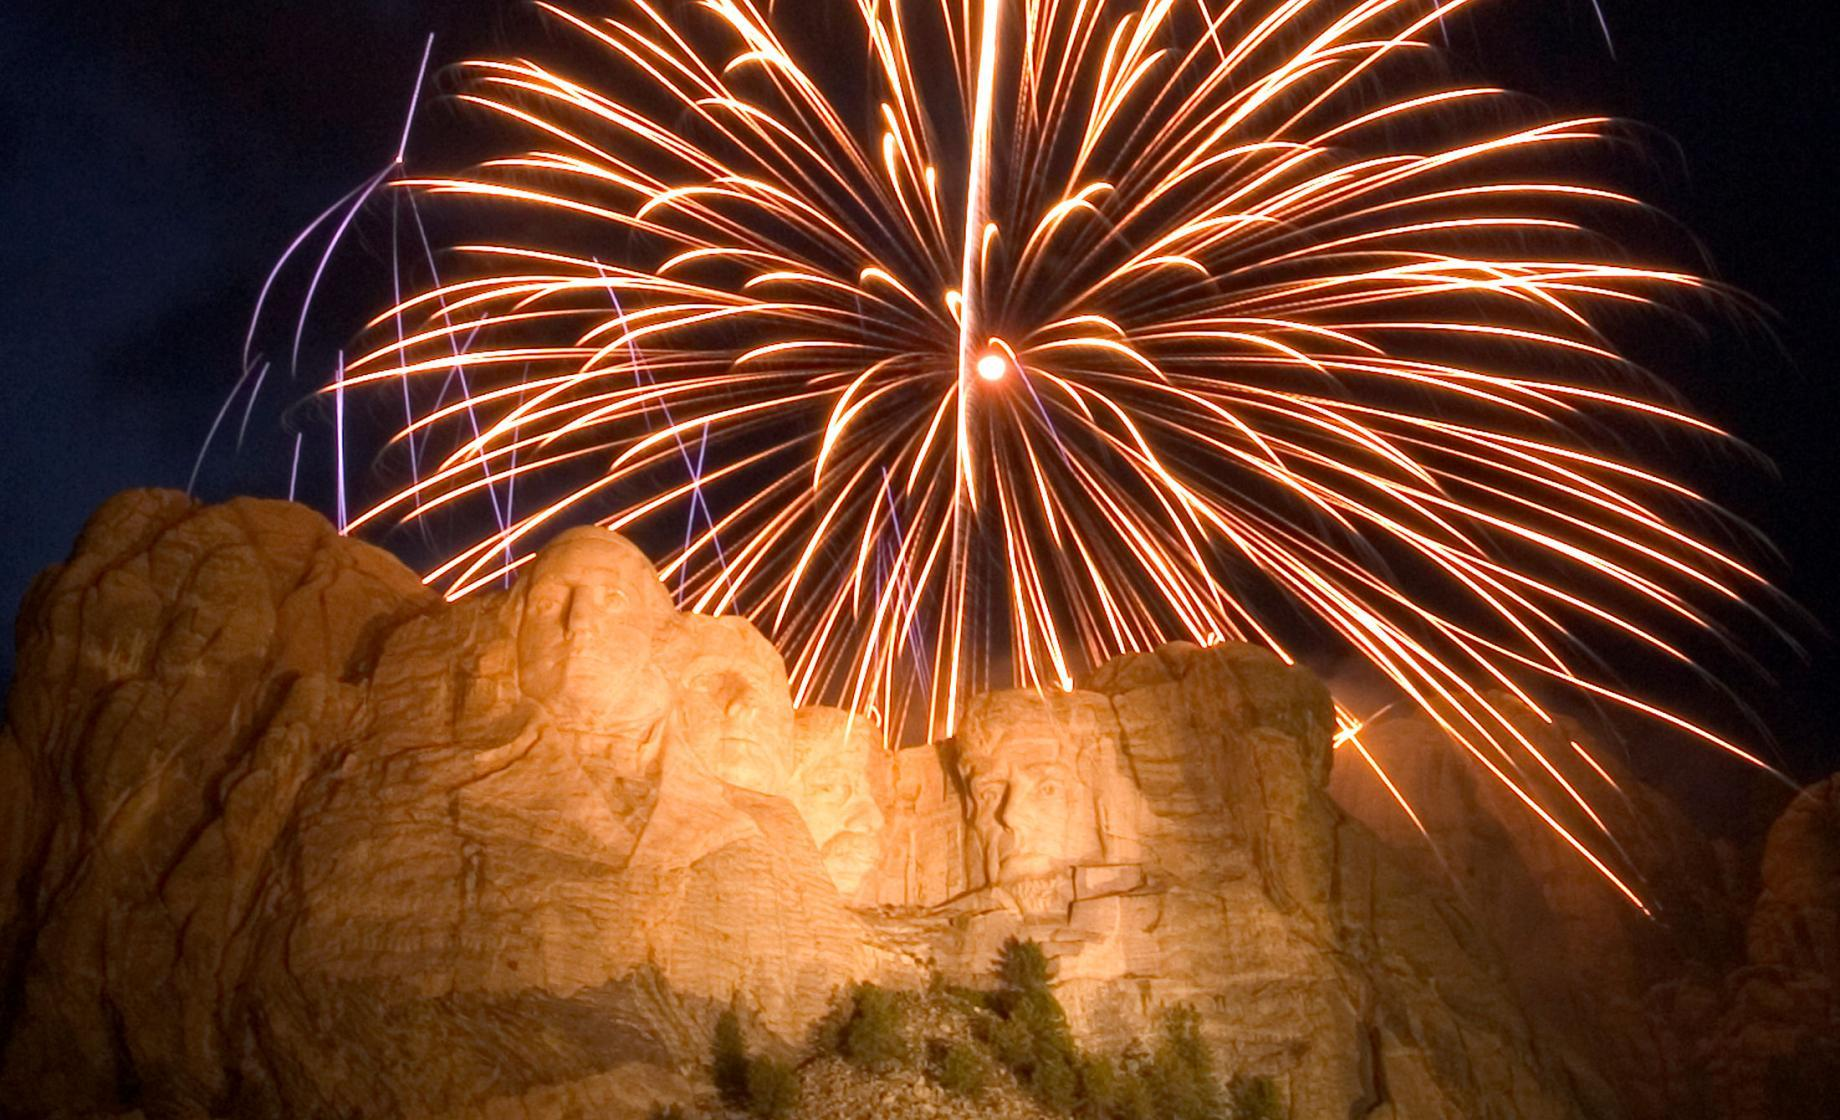 Fireworks at Mount Rushmore National Memorial